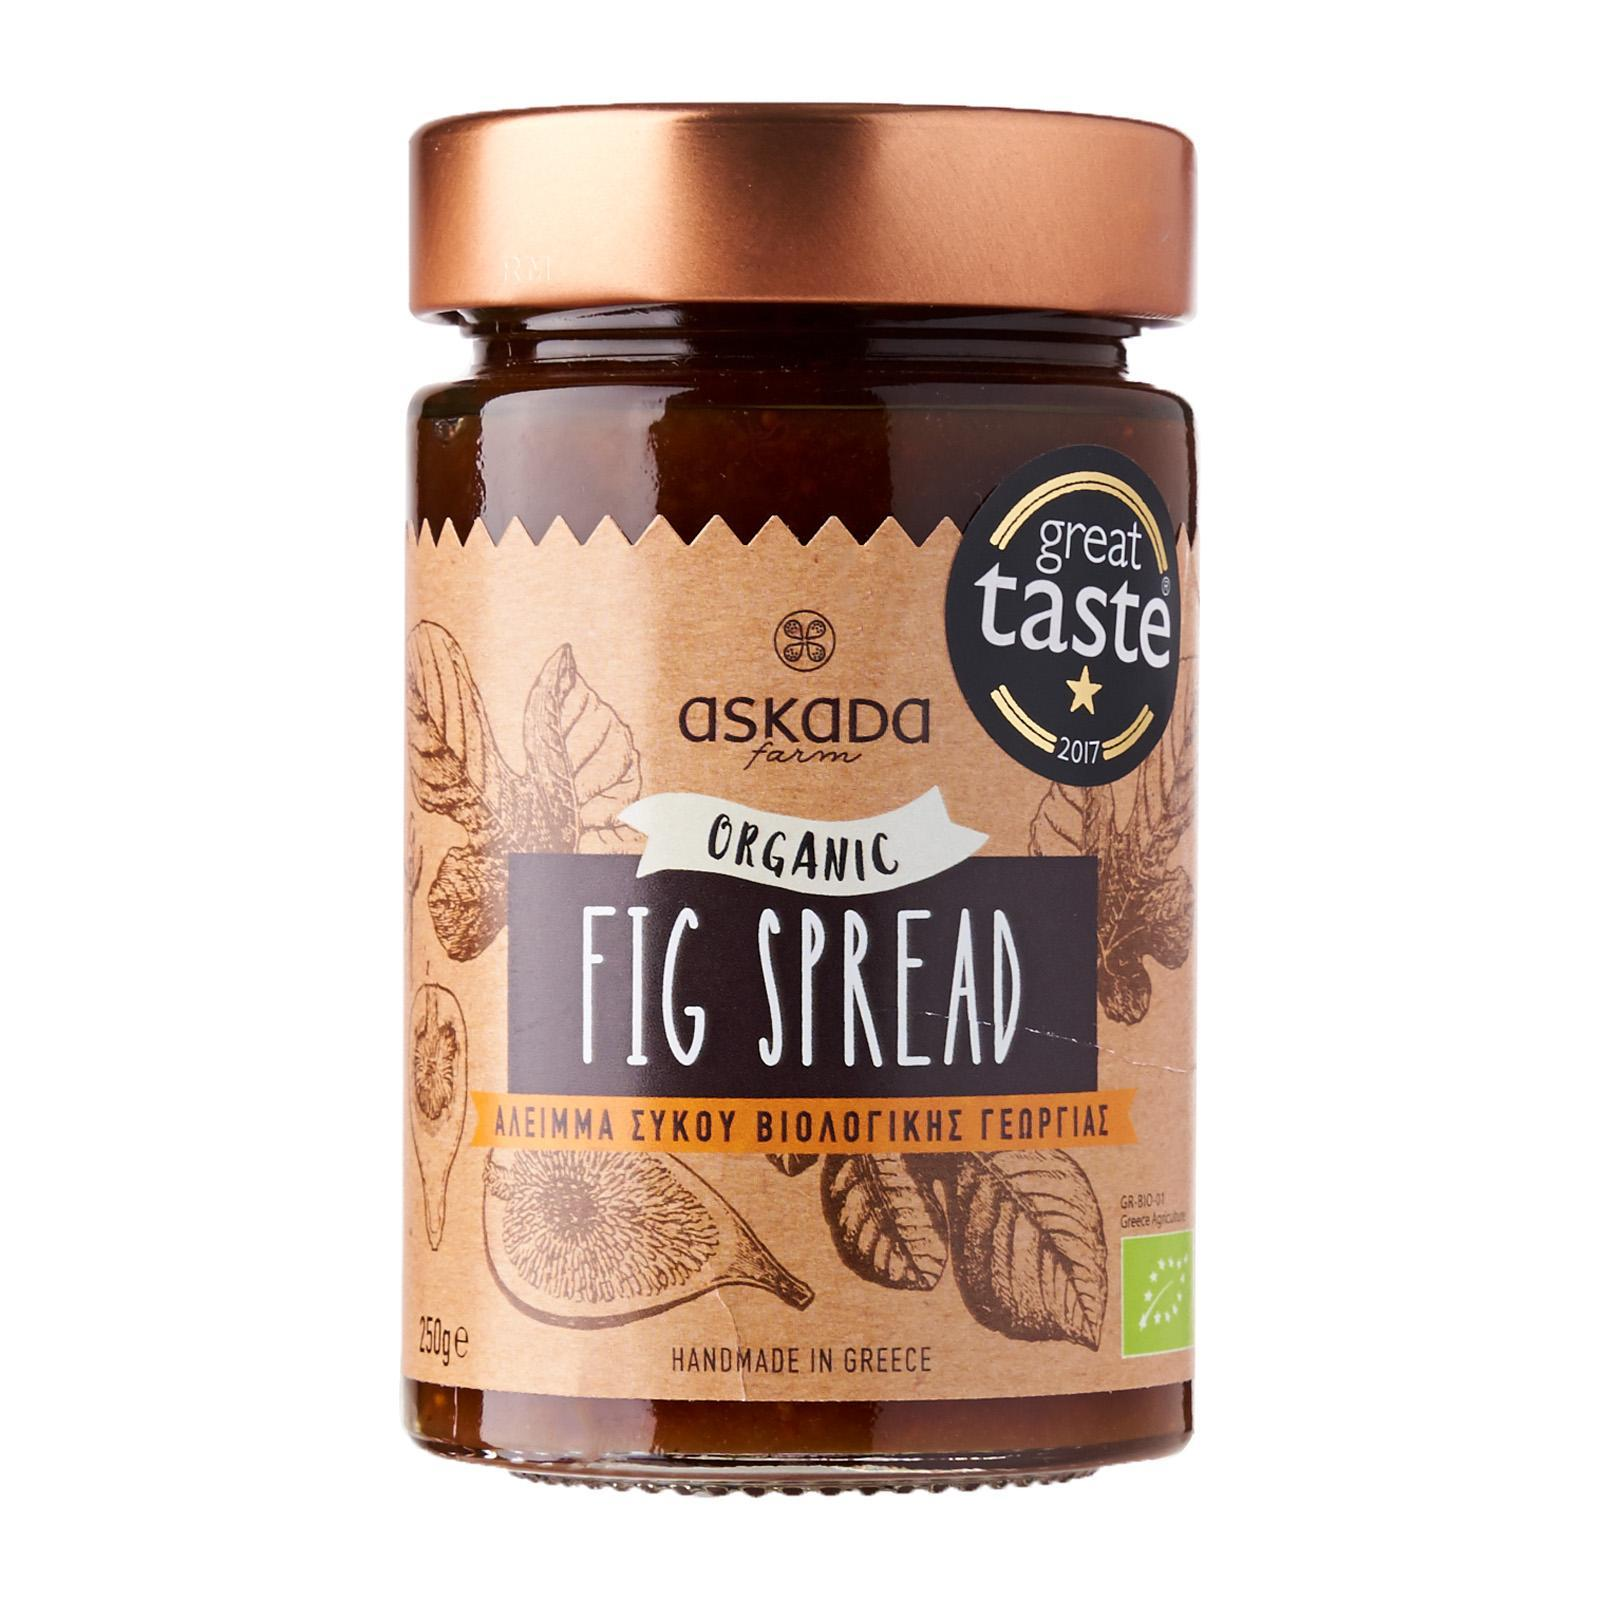 Askada Farm Organic Fig Spread - By Agora Products